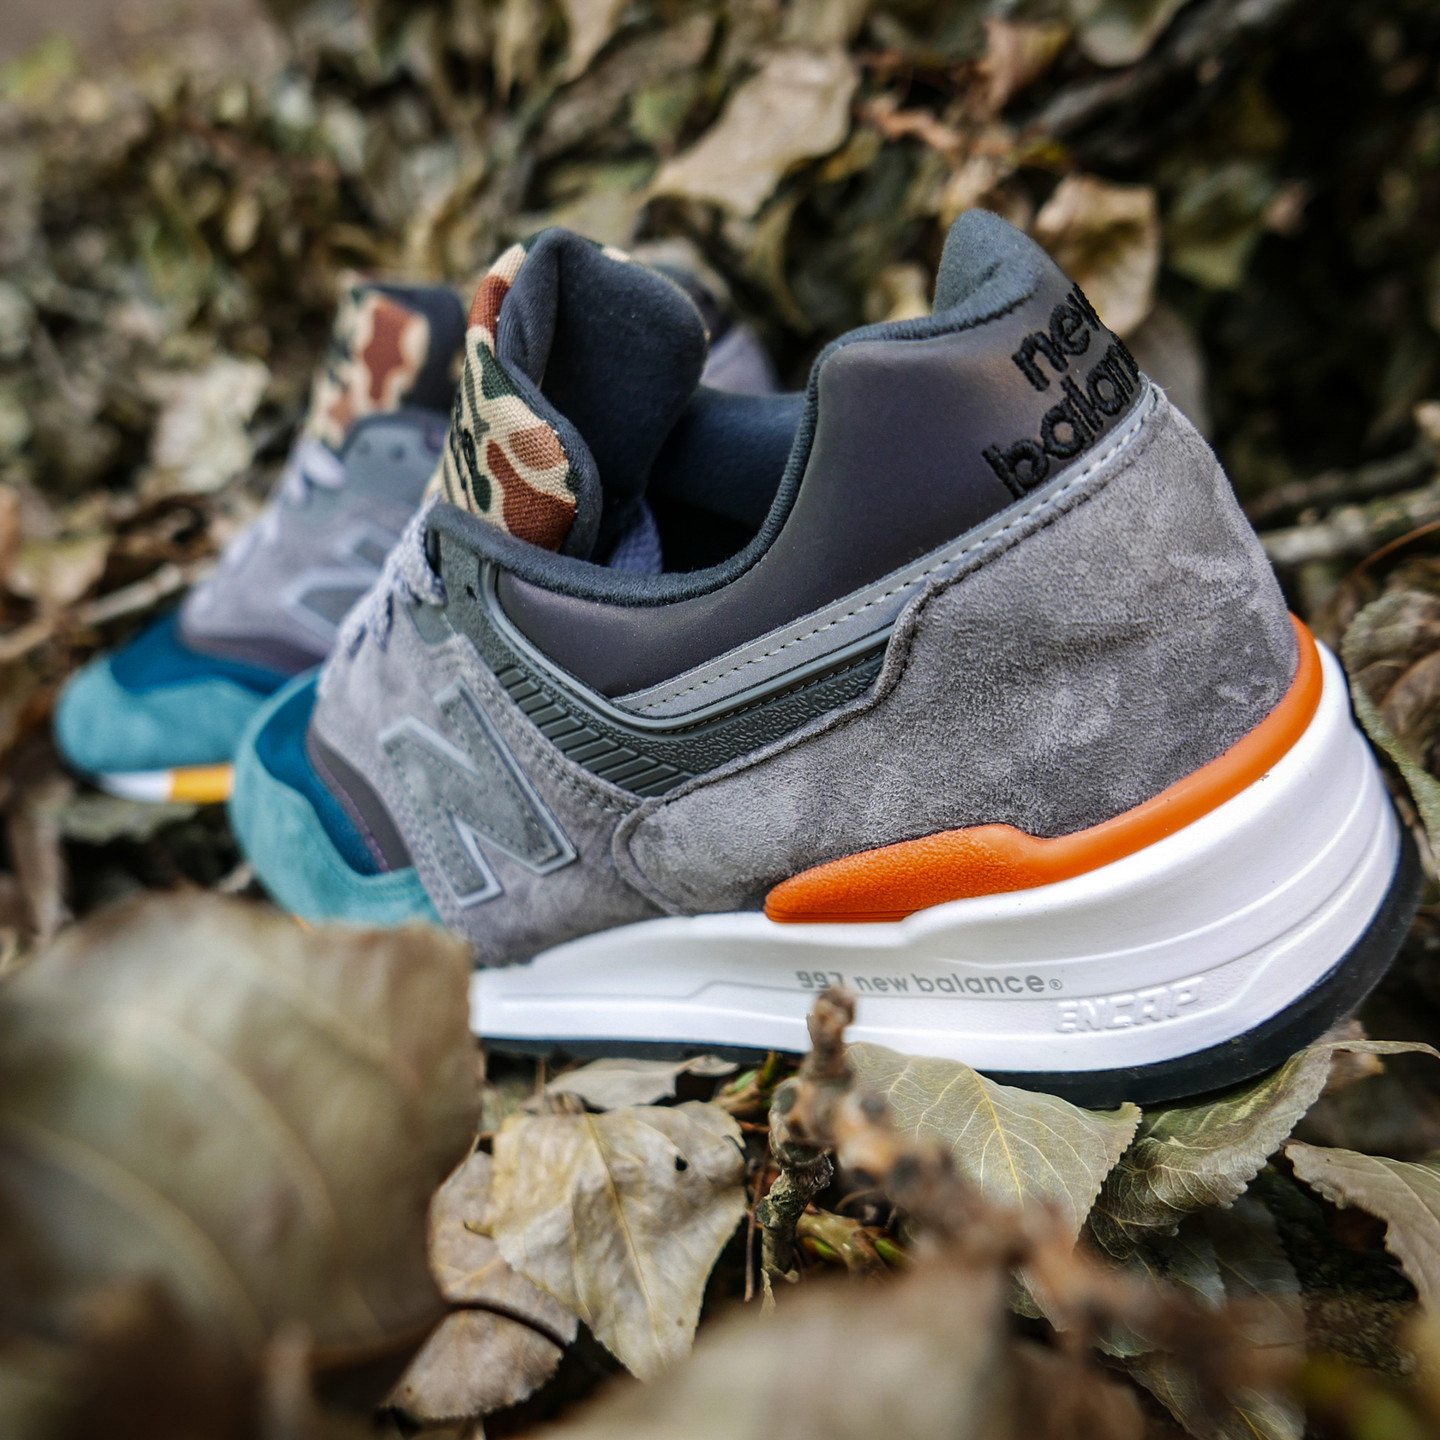 New Balance M997 - Made in USA Petrol / Camo / Grey / Orange M997NM